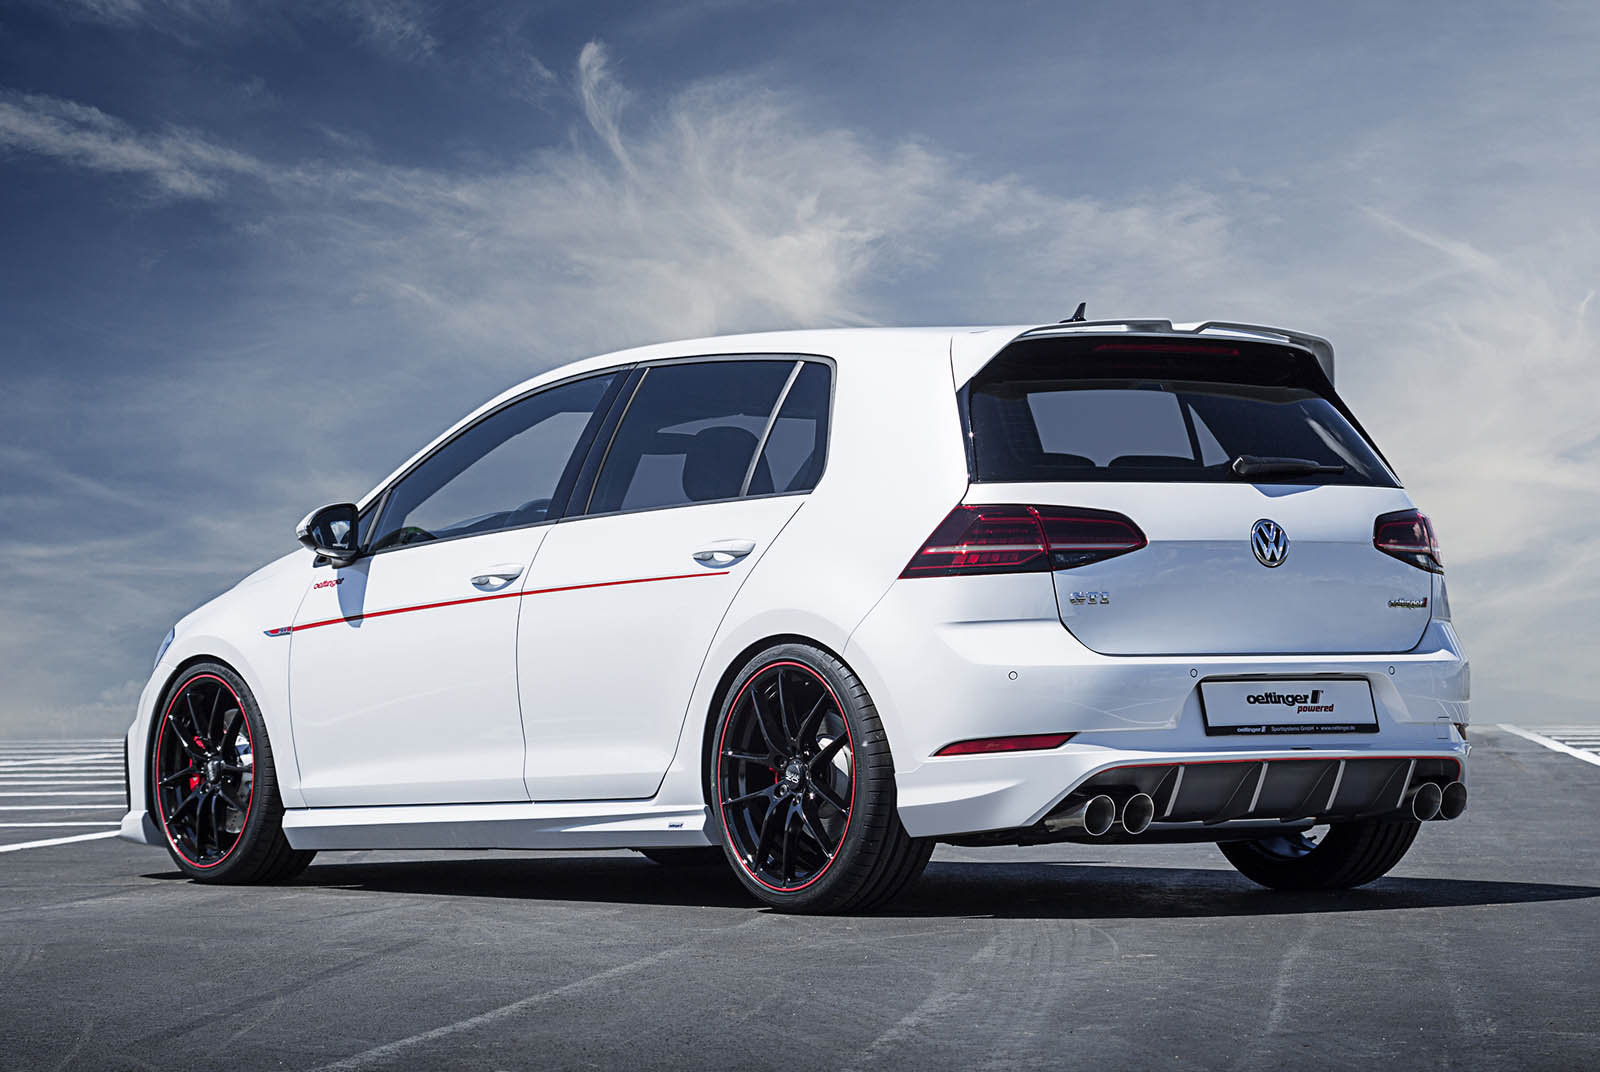 Oettinger Goes Worthersee With Comprehensive Golf GTI/R ...